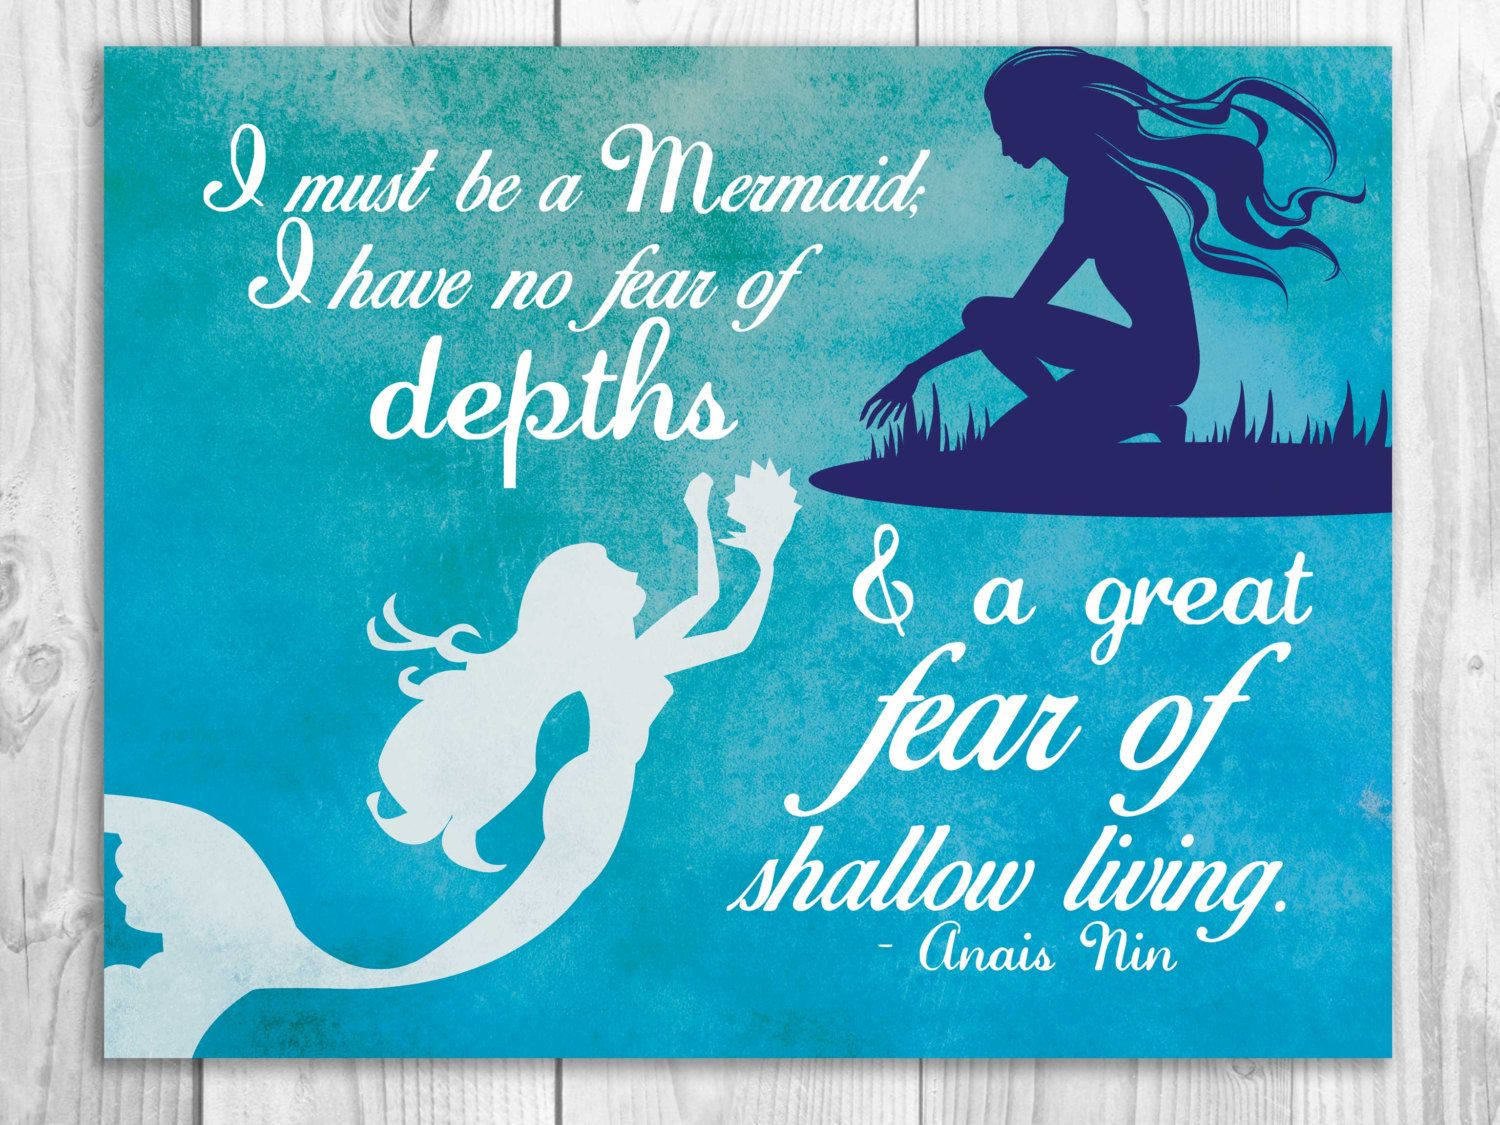 Mermaid Quotes And Sayings